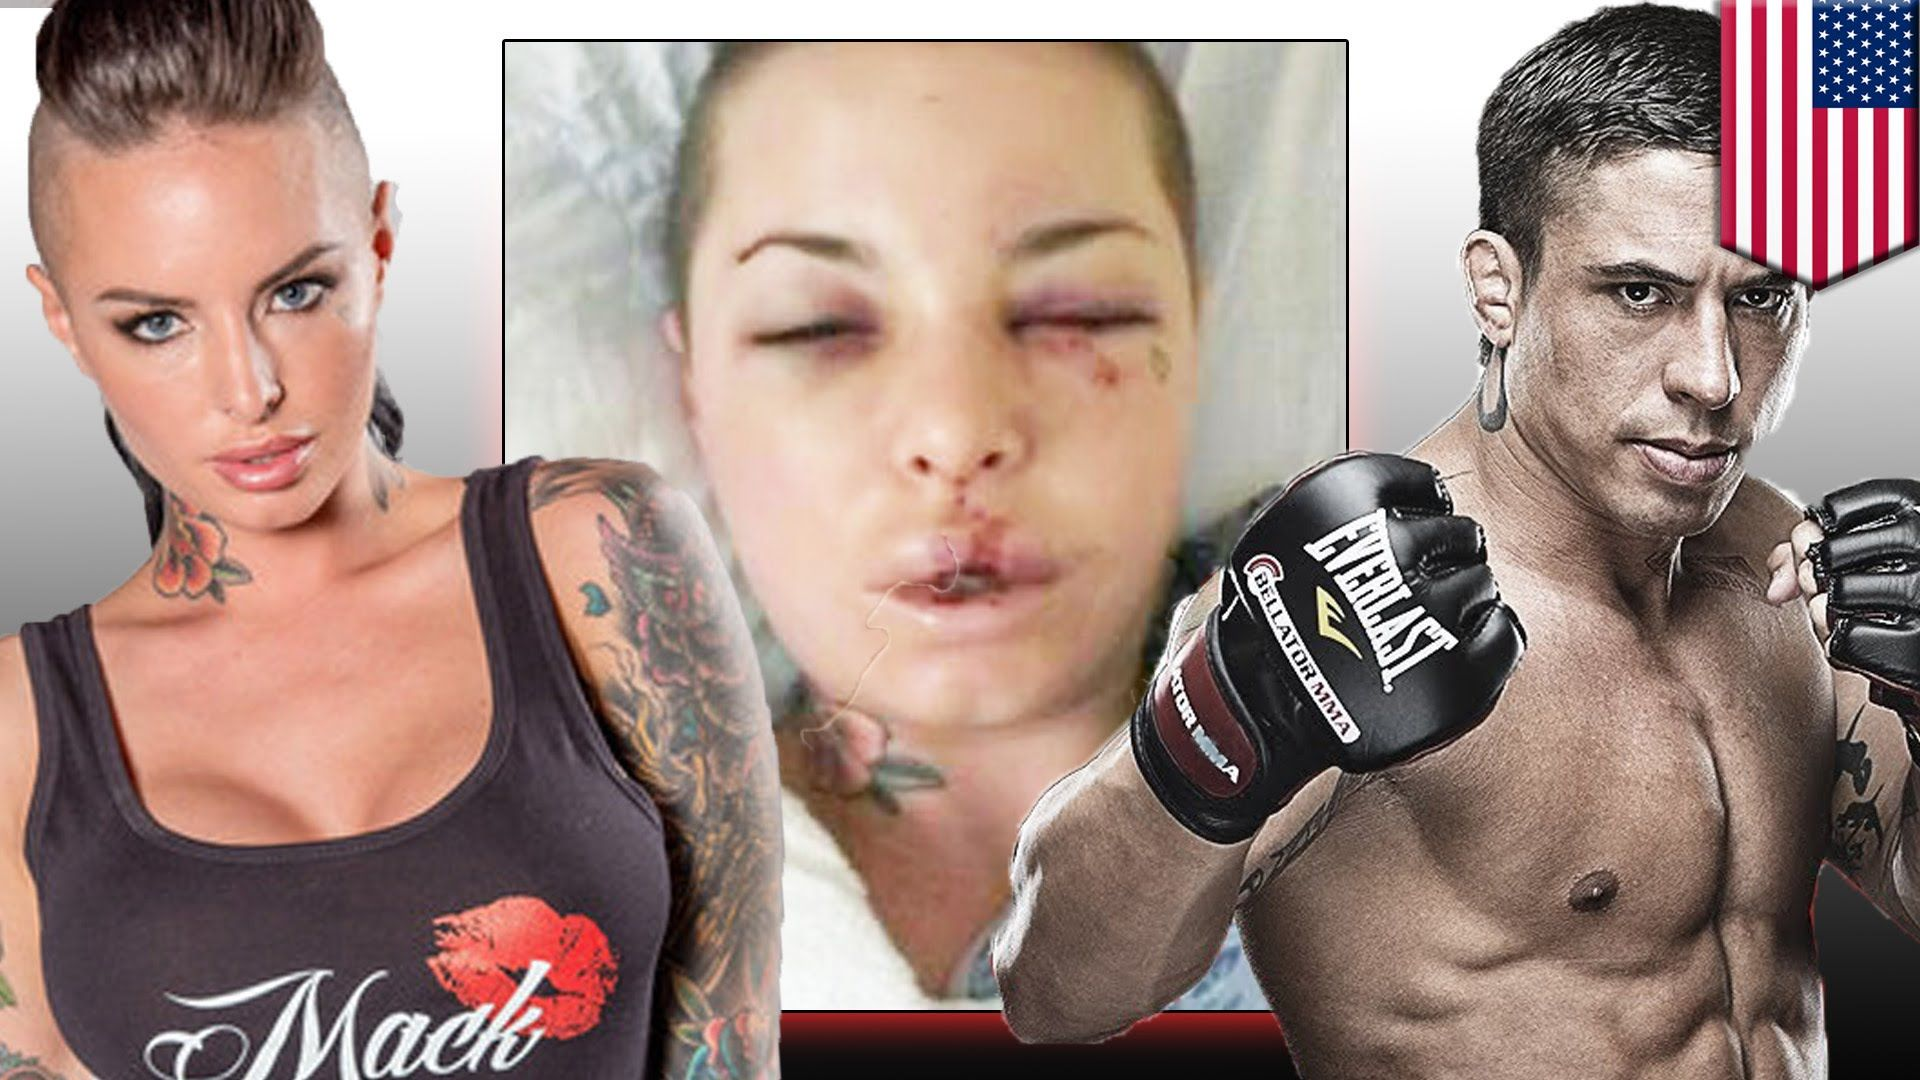 Forum on this topic: Lawrence ellis, christy-mack-nude-mma-star-war-machine/